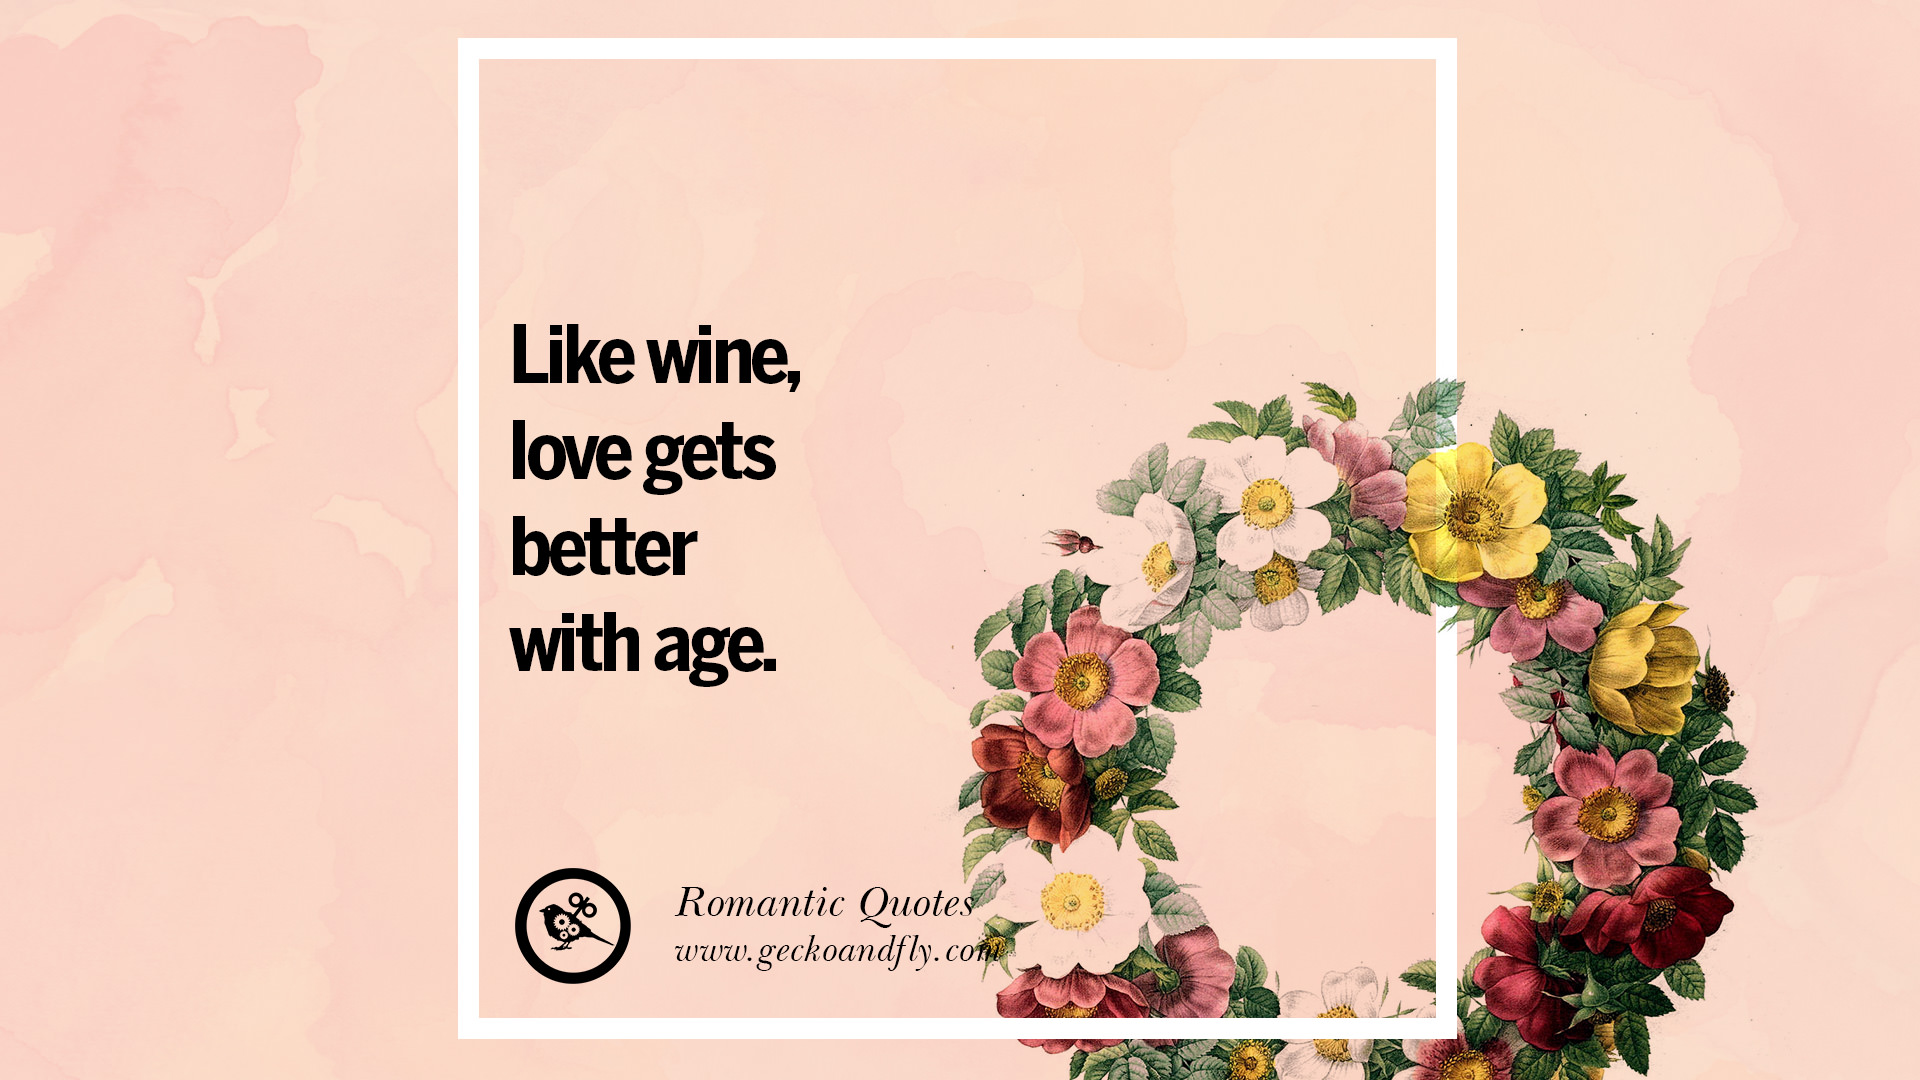 Wine Love Quotes 36 Lovely Romantic Quotes And Wedding Vows For An Inspiring Toast